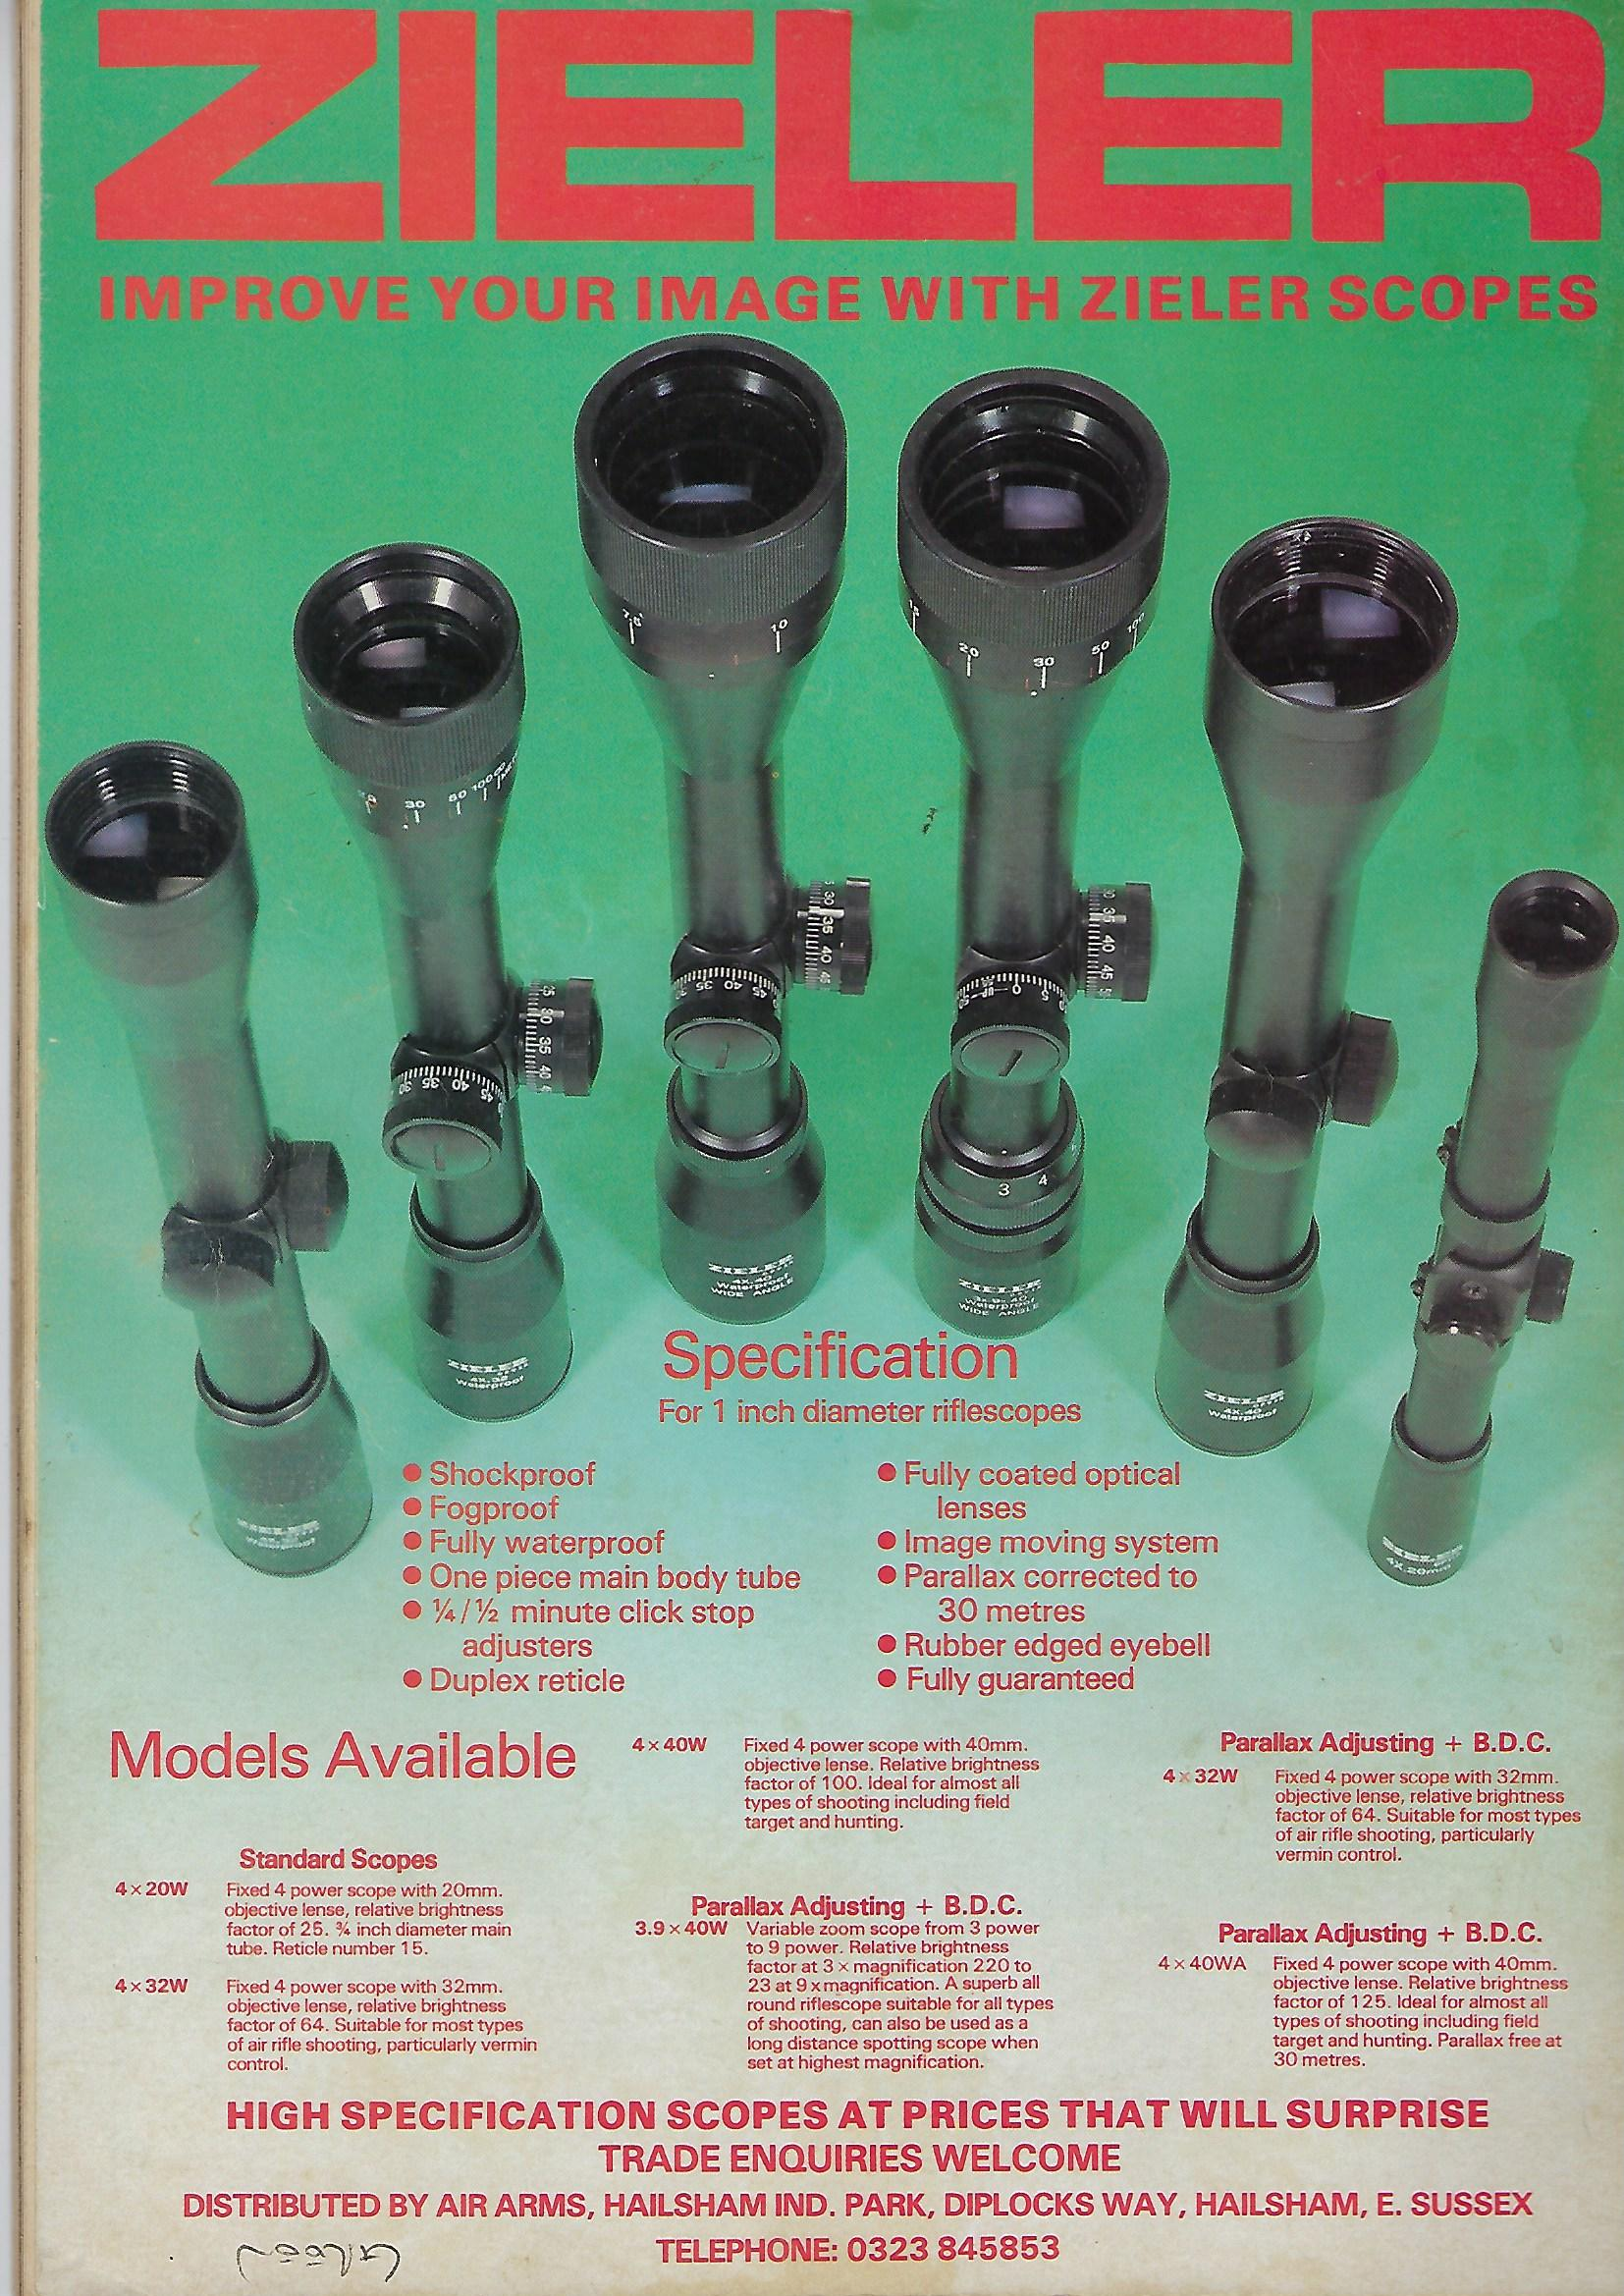 AGW - APRIL 1990 - ZEILER AD.jpg